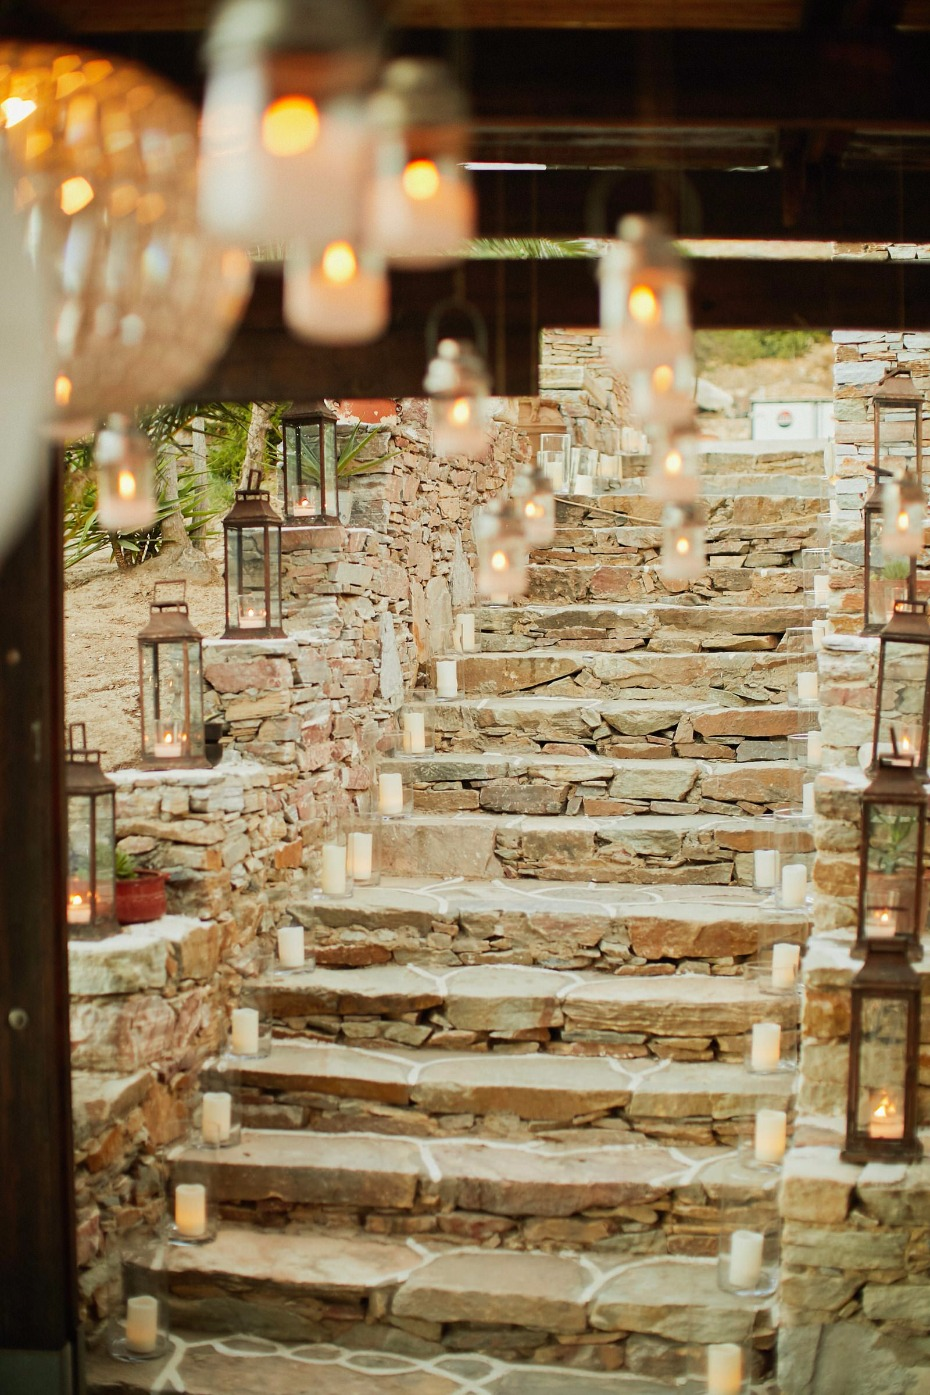 candle lit stairway entry into this Greek island wedding reception